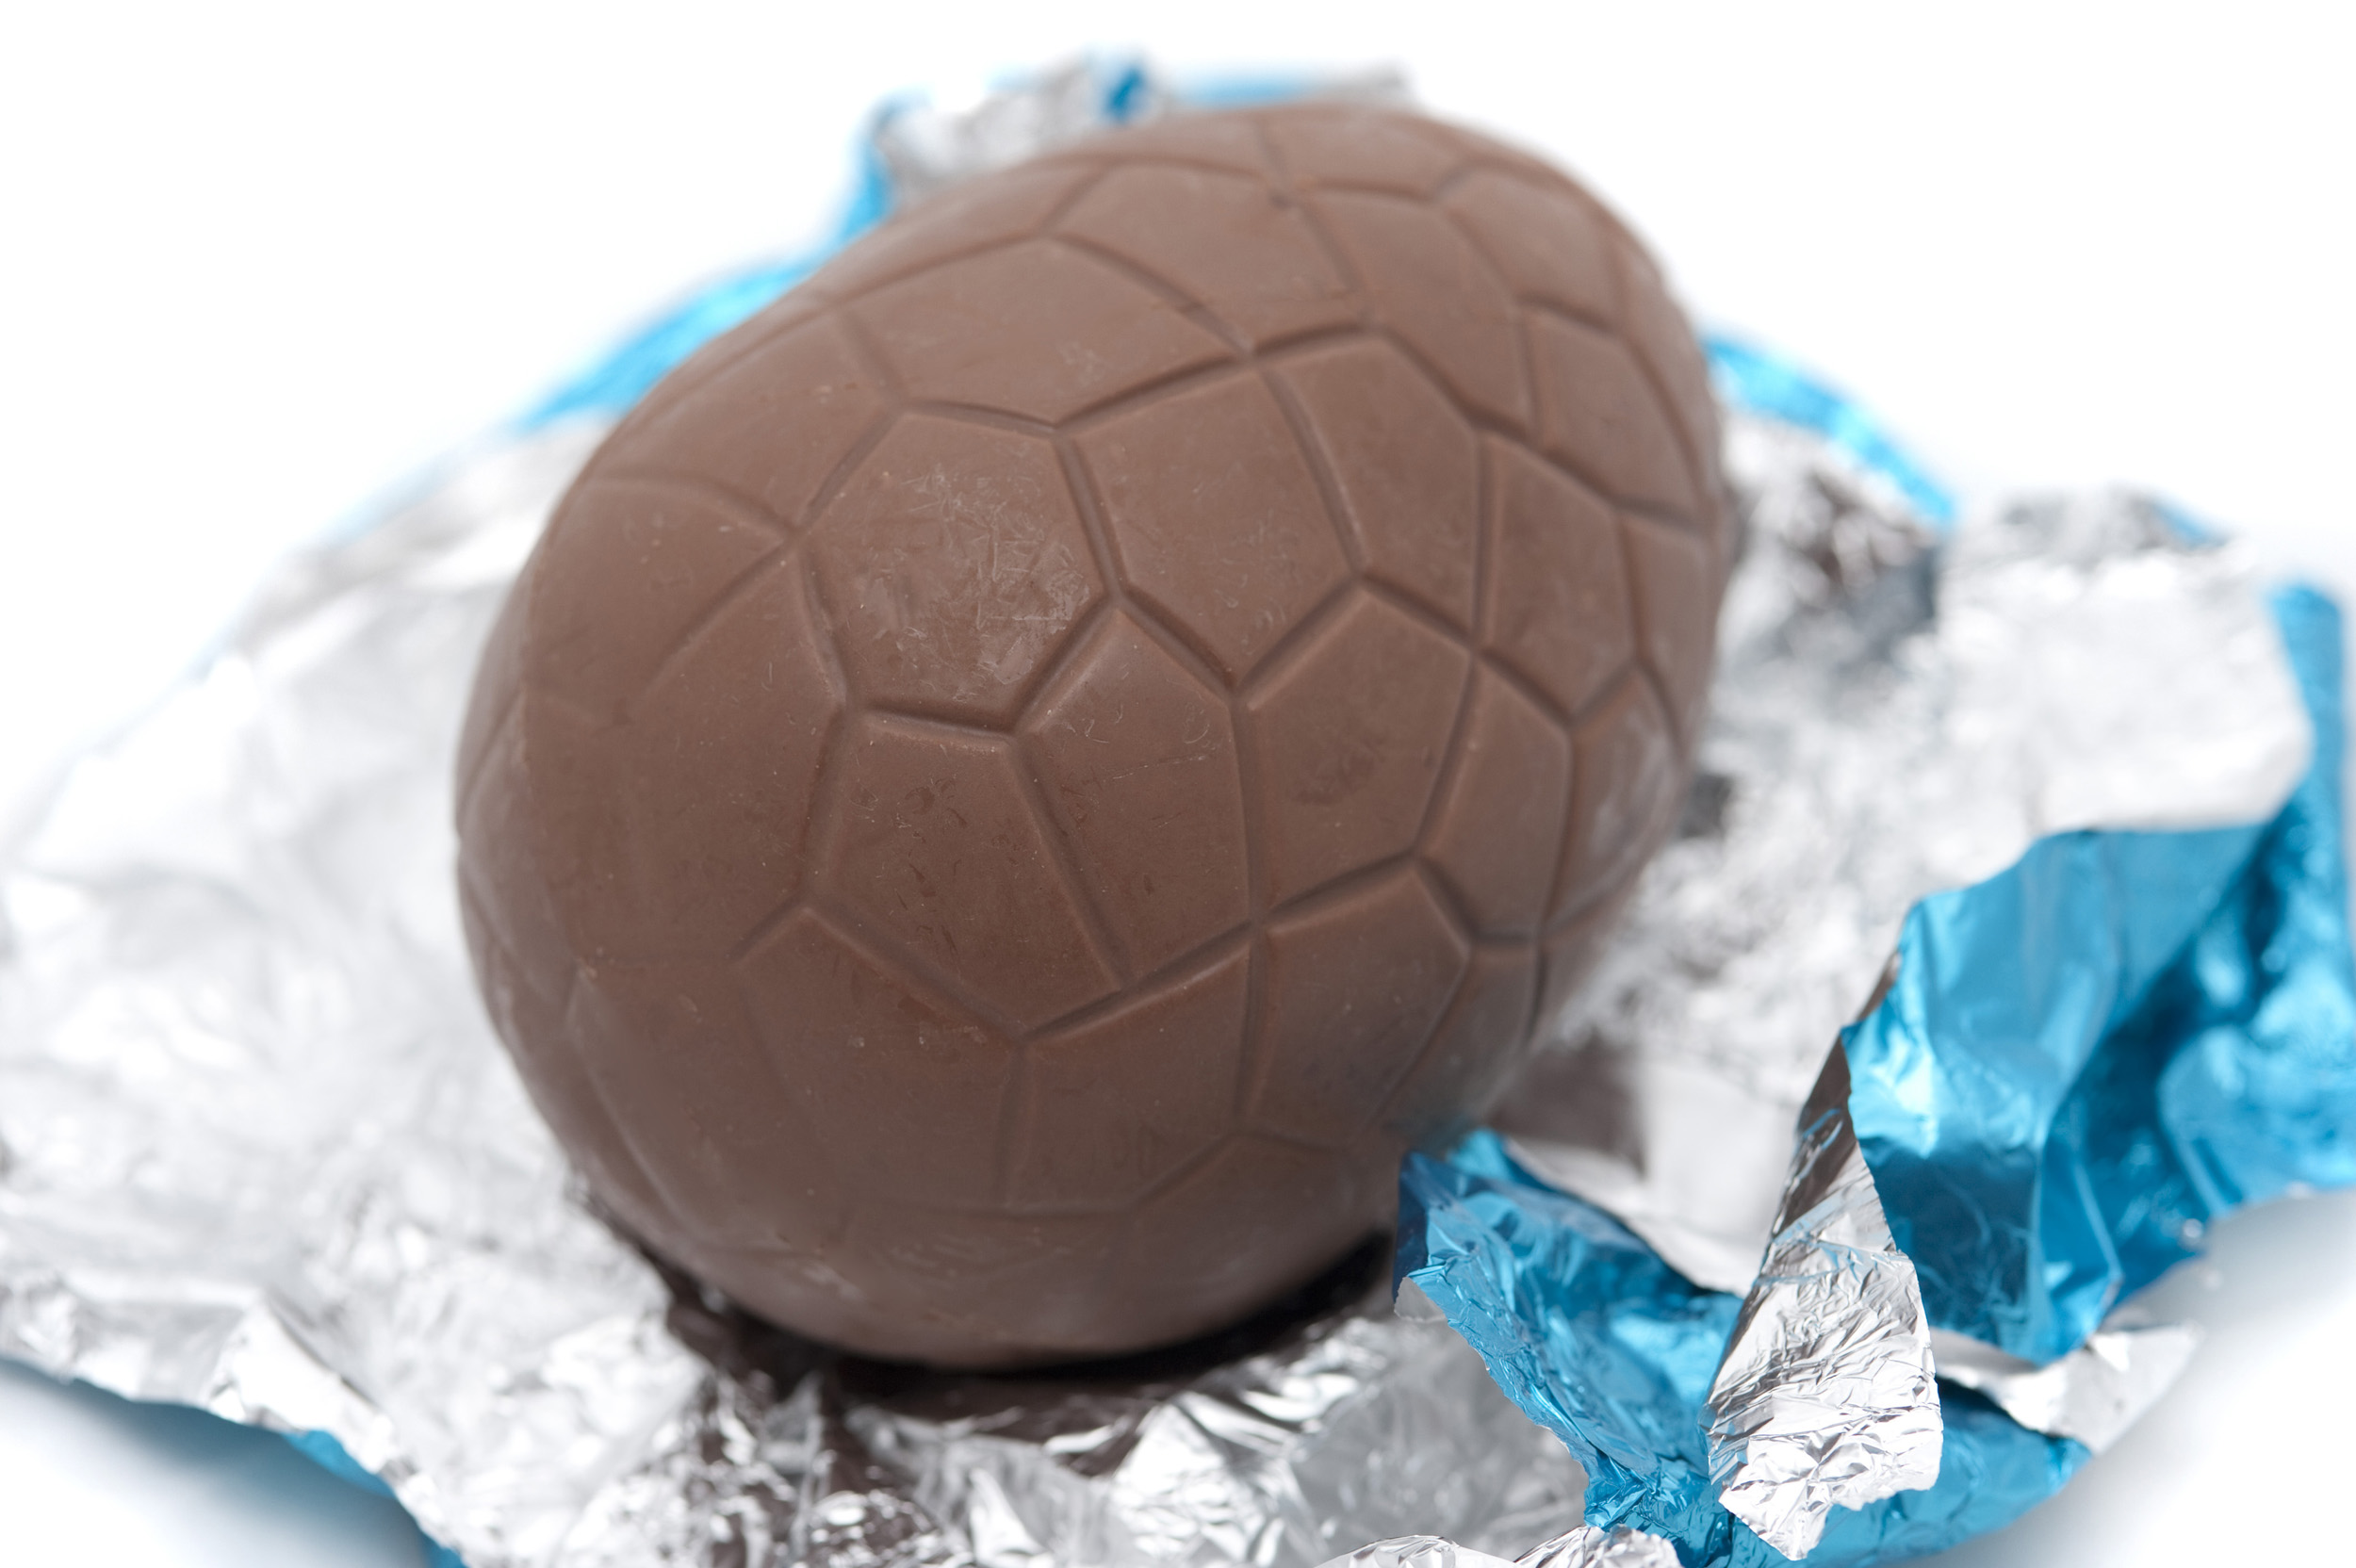 Unwrapped Chocolate Easter Egg Creative Commons Stock Image